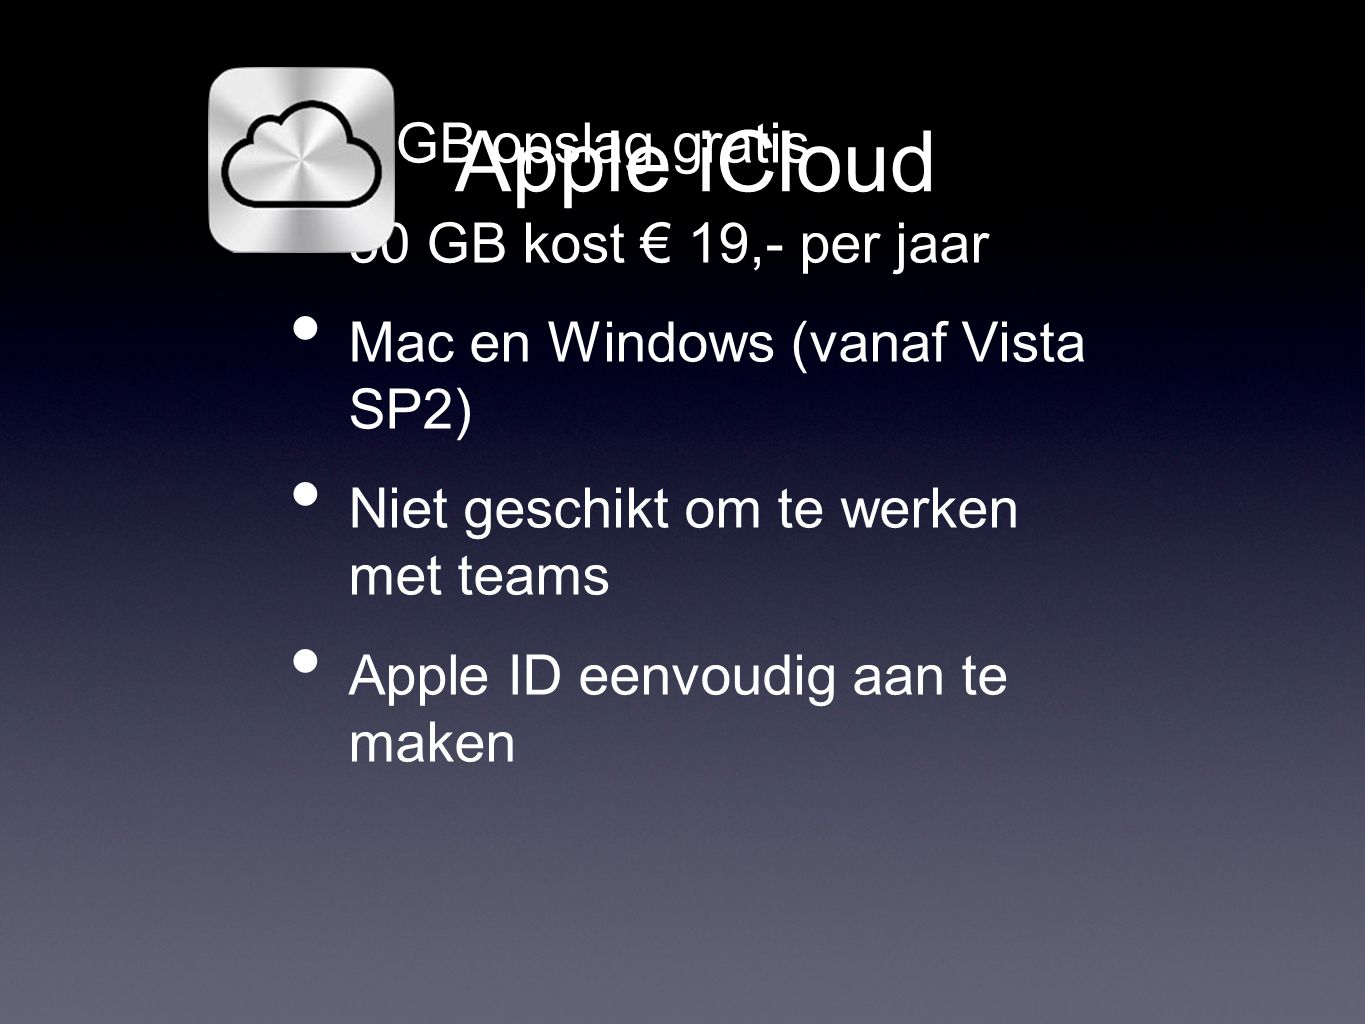 Apple iCloud • 5 GB opslag gratis • 50 GB kost € 19,- per jaar • Mac en Windows (vanaf Vista SP2) • Niet geschikt om te werken met teams • Apple ID eenvoudig aan te maken